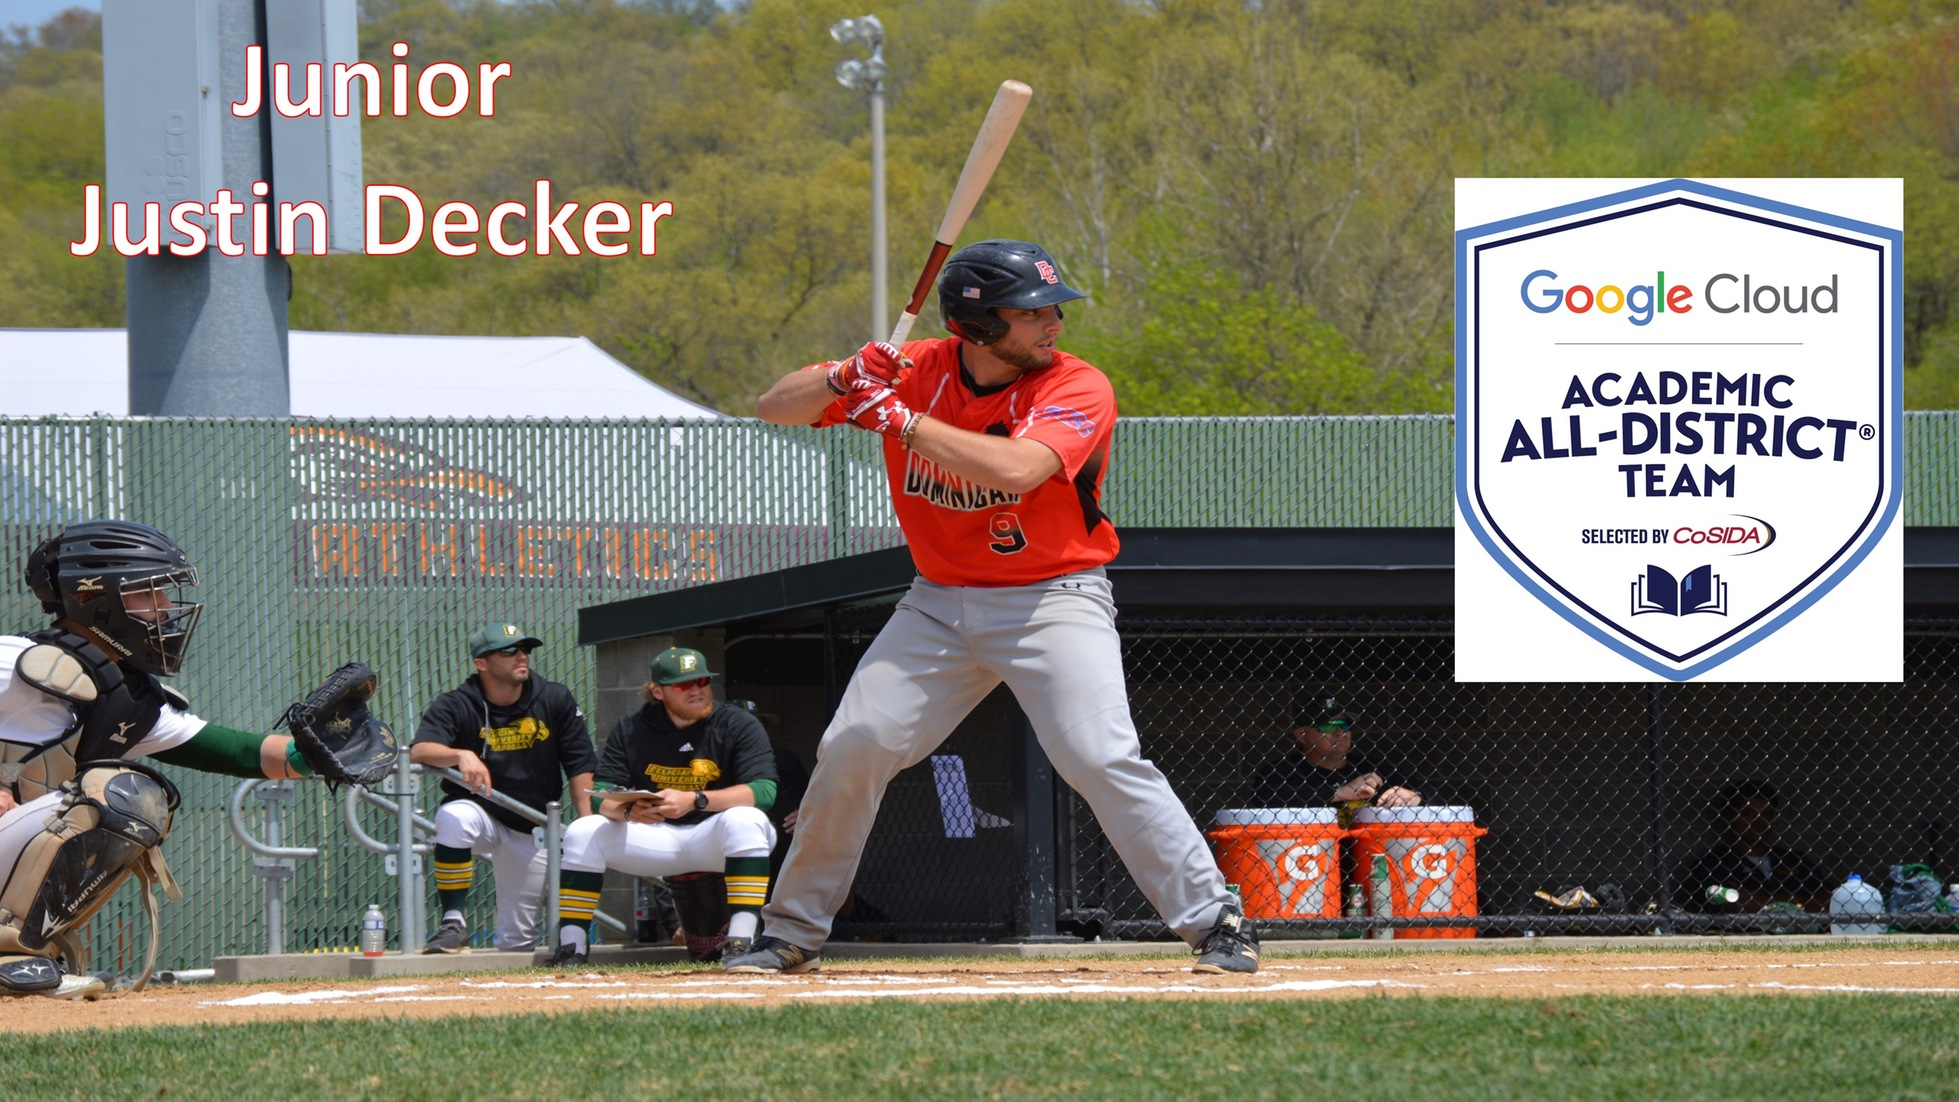 Dominican College baseball player, Justin Decker, has been named to the Google Cloud Academic All-District� First Team.